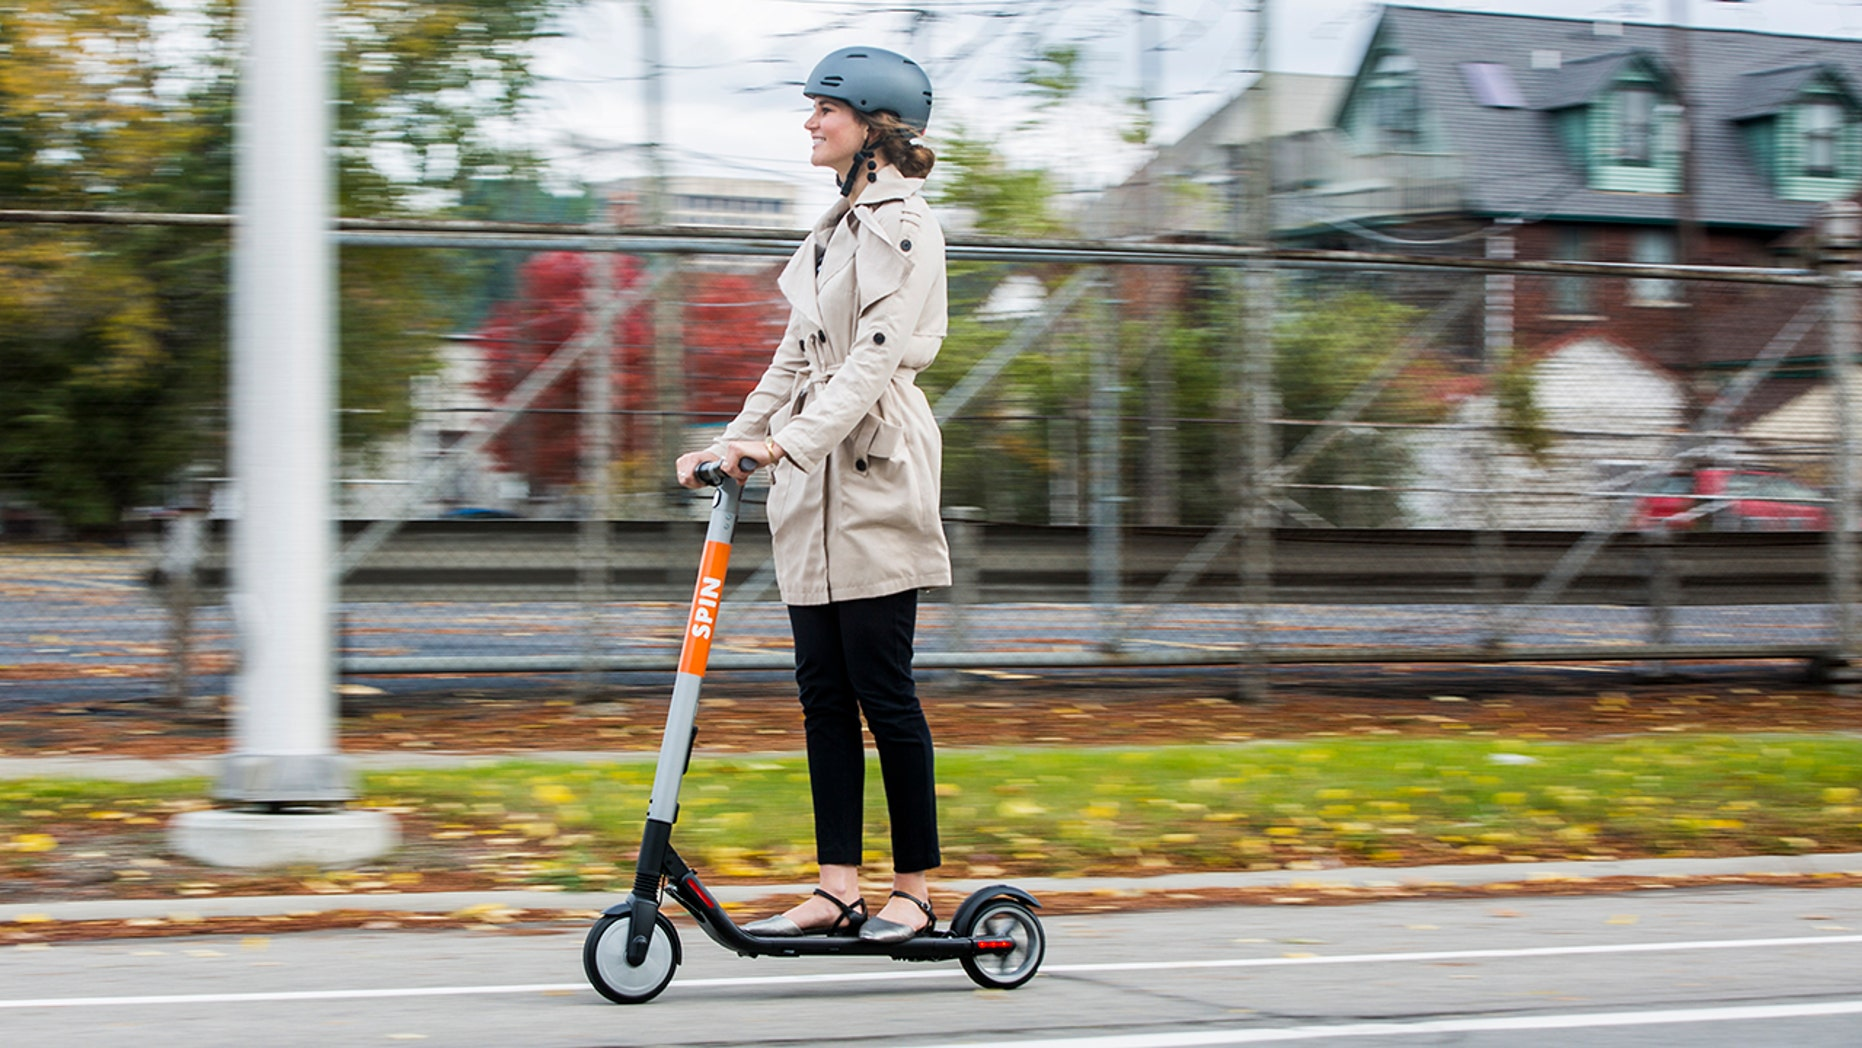 Ford Acquires San Francisco Based Electric Scooter Company Spin